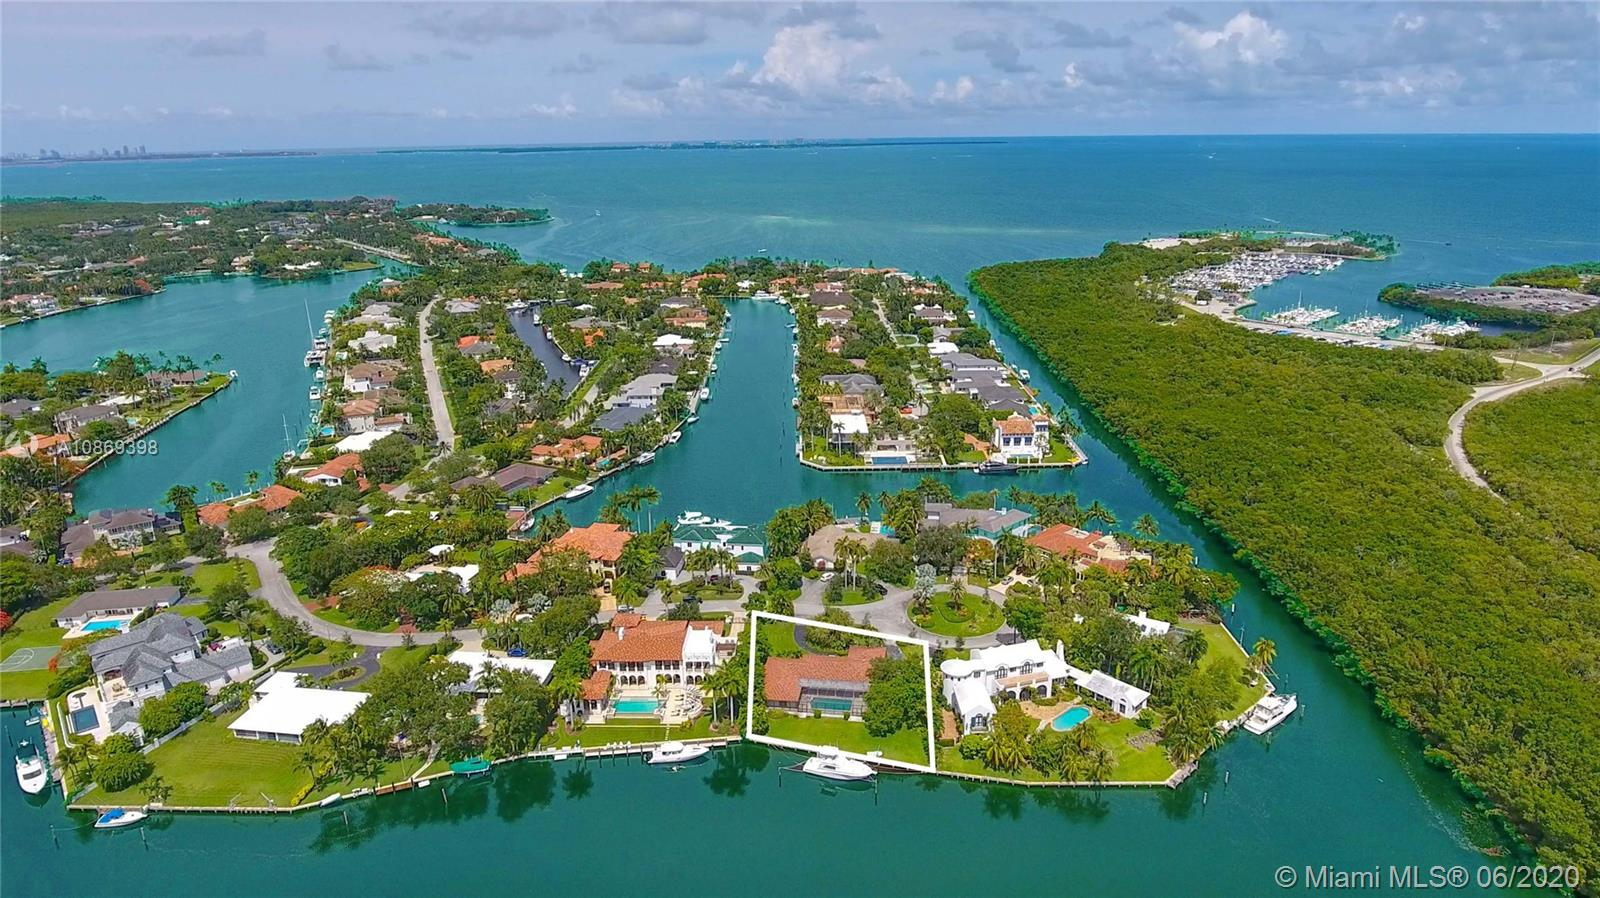 Enjoy lovely, unusually wide canal views from this highly desirable Old Cutler Bay address on gorgeous Gallardo Street. This lush half-acre sits on a beautiful cul-de-sac with 137 feet of prime waterfront boasting direct bay access with no bridges. Custom-build your dream home or remodel the existing house with interior features that include marble floors, large kitchen with granite countertops, an expansive master with his/hers baths & walk-in closets. Dock amenities include jet ski davit, electric and water. Ideally situated near top-tier schools, world-class parks, renowned hospitals, boutique shopping and cosmopolitan dining. Enjoy 24-hour guard-gated security with roaming patrol.